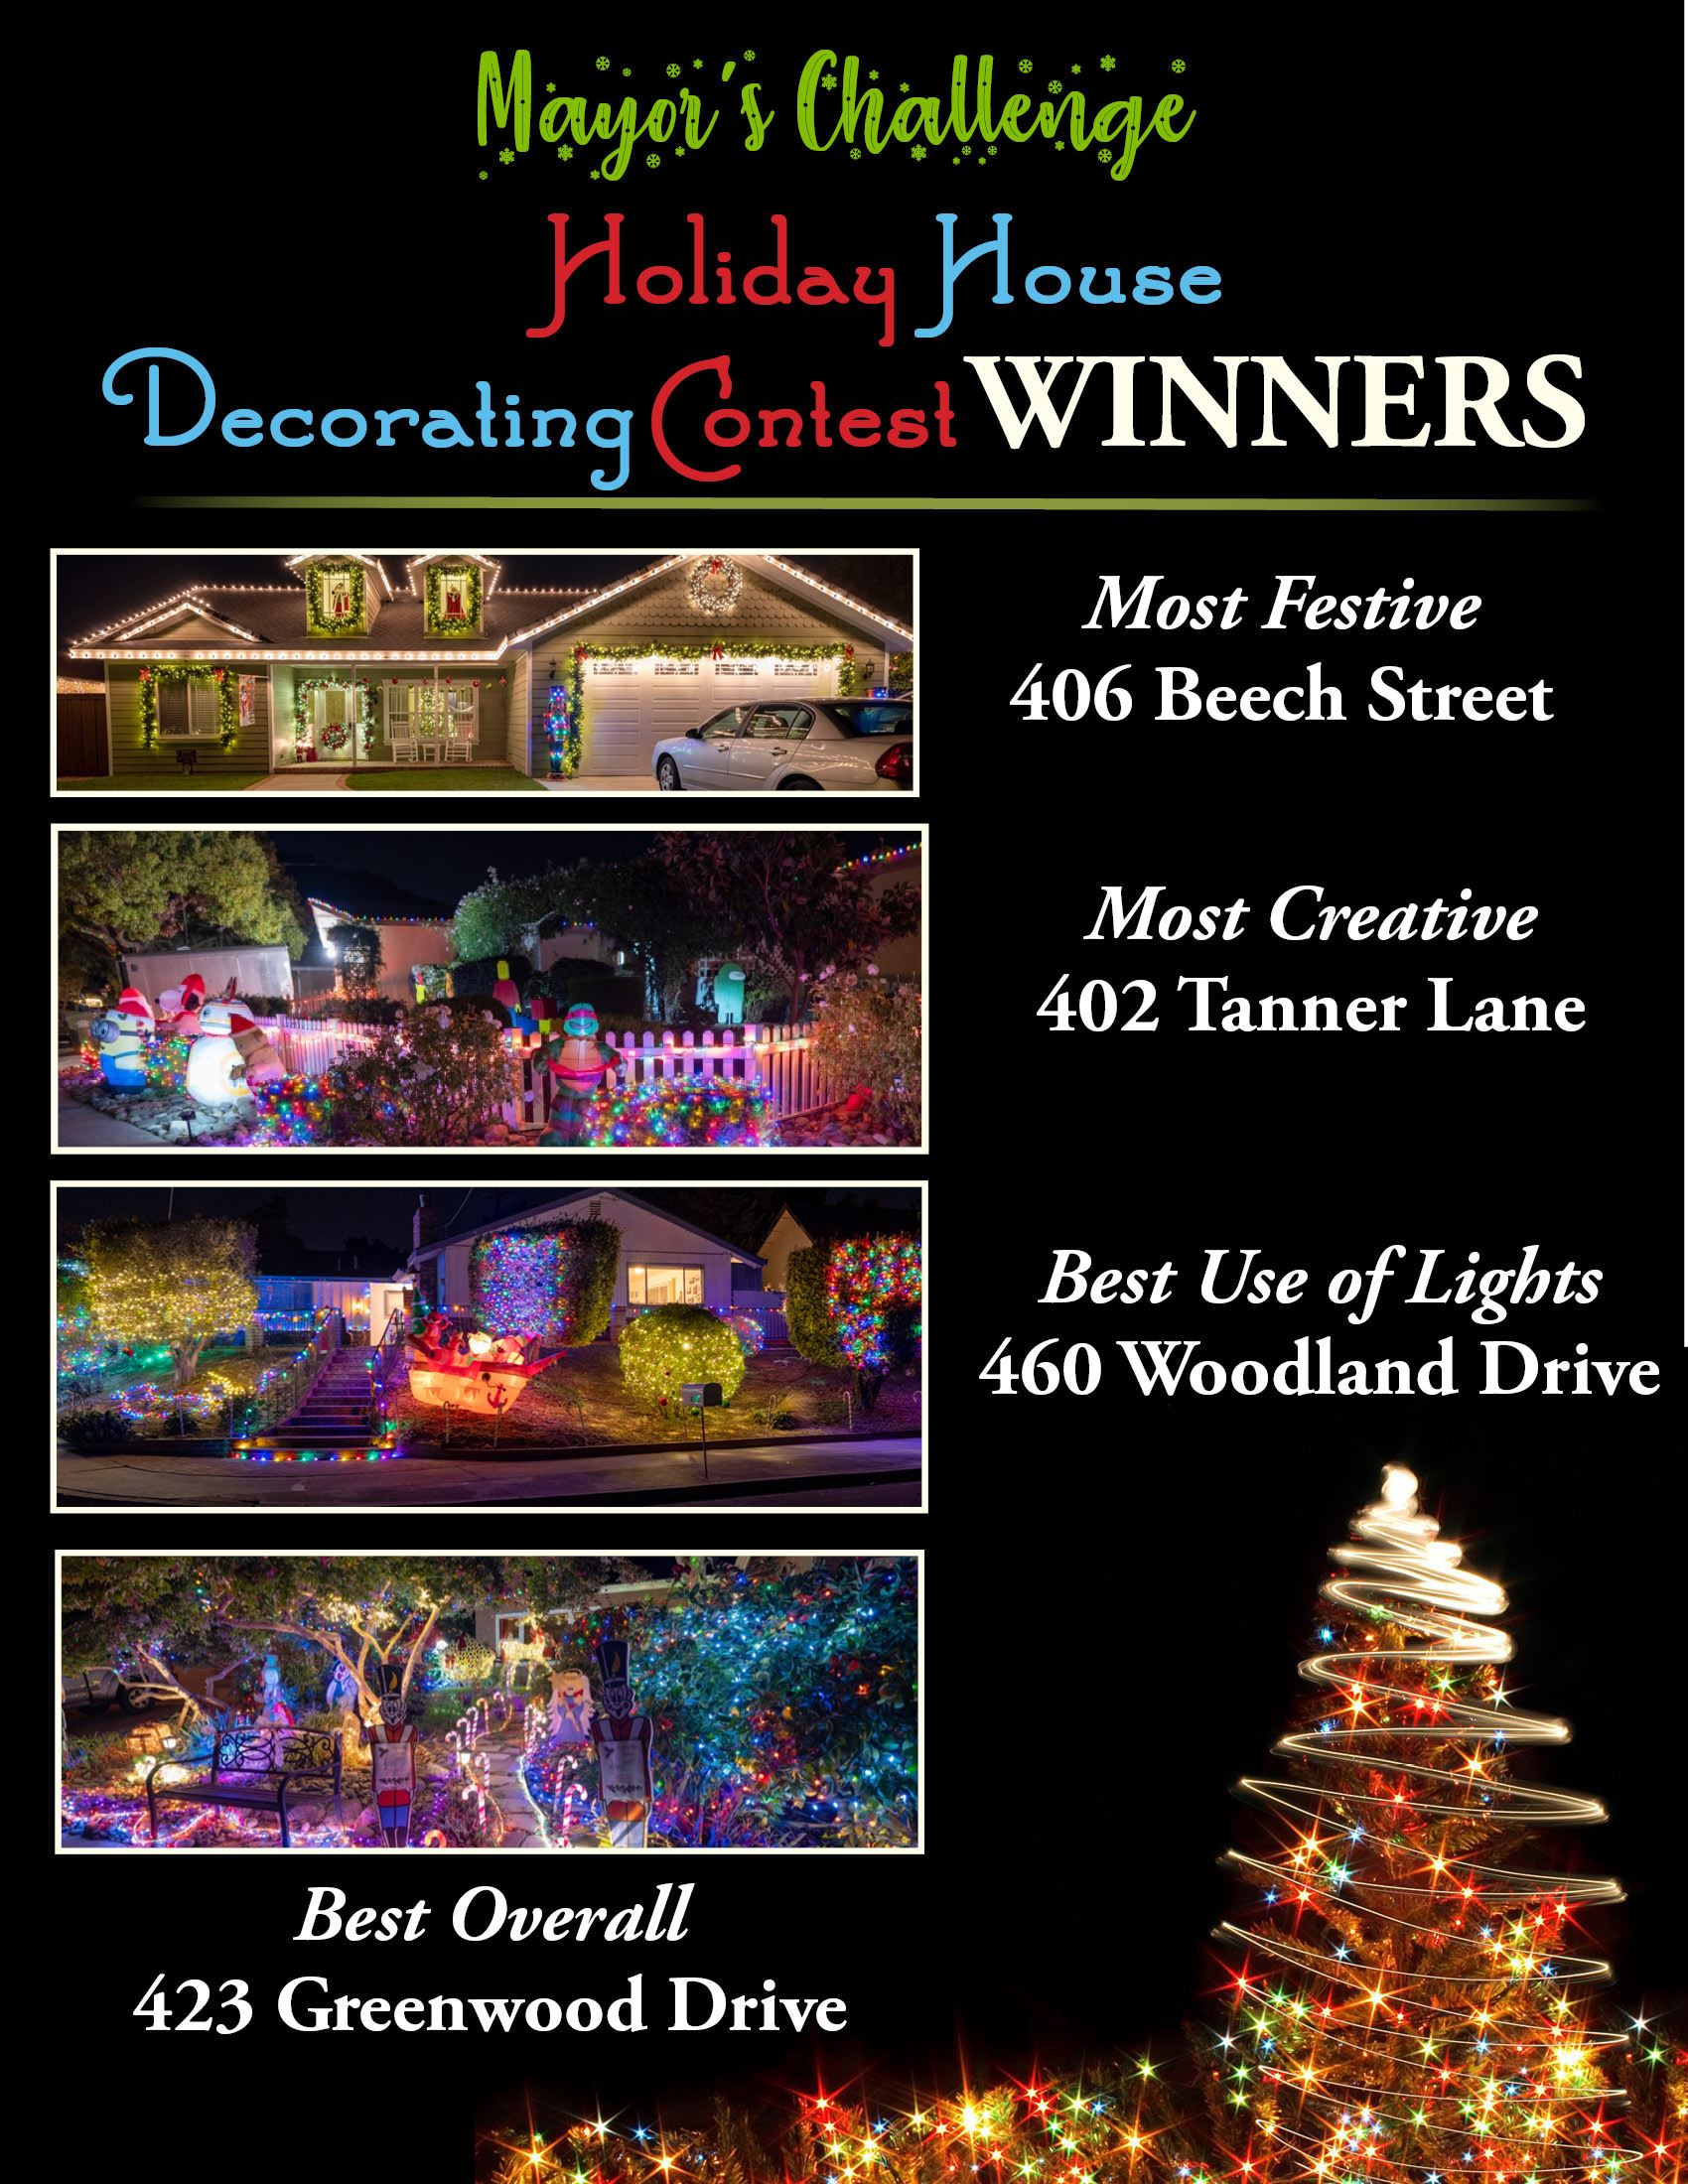 House Decorating Winners_Web